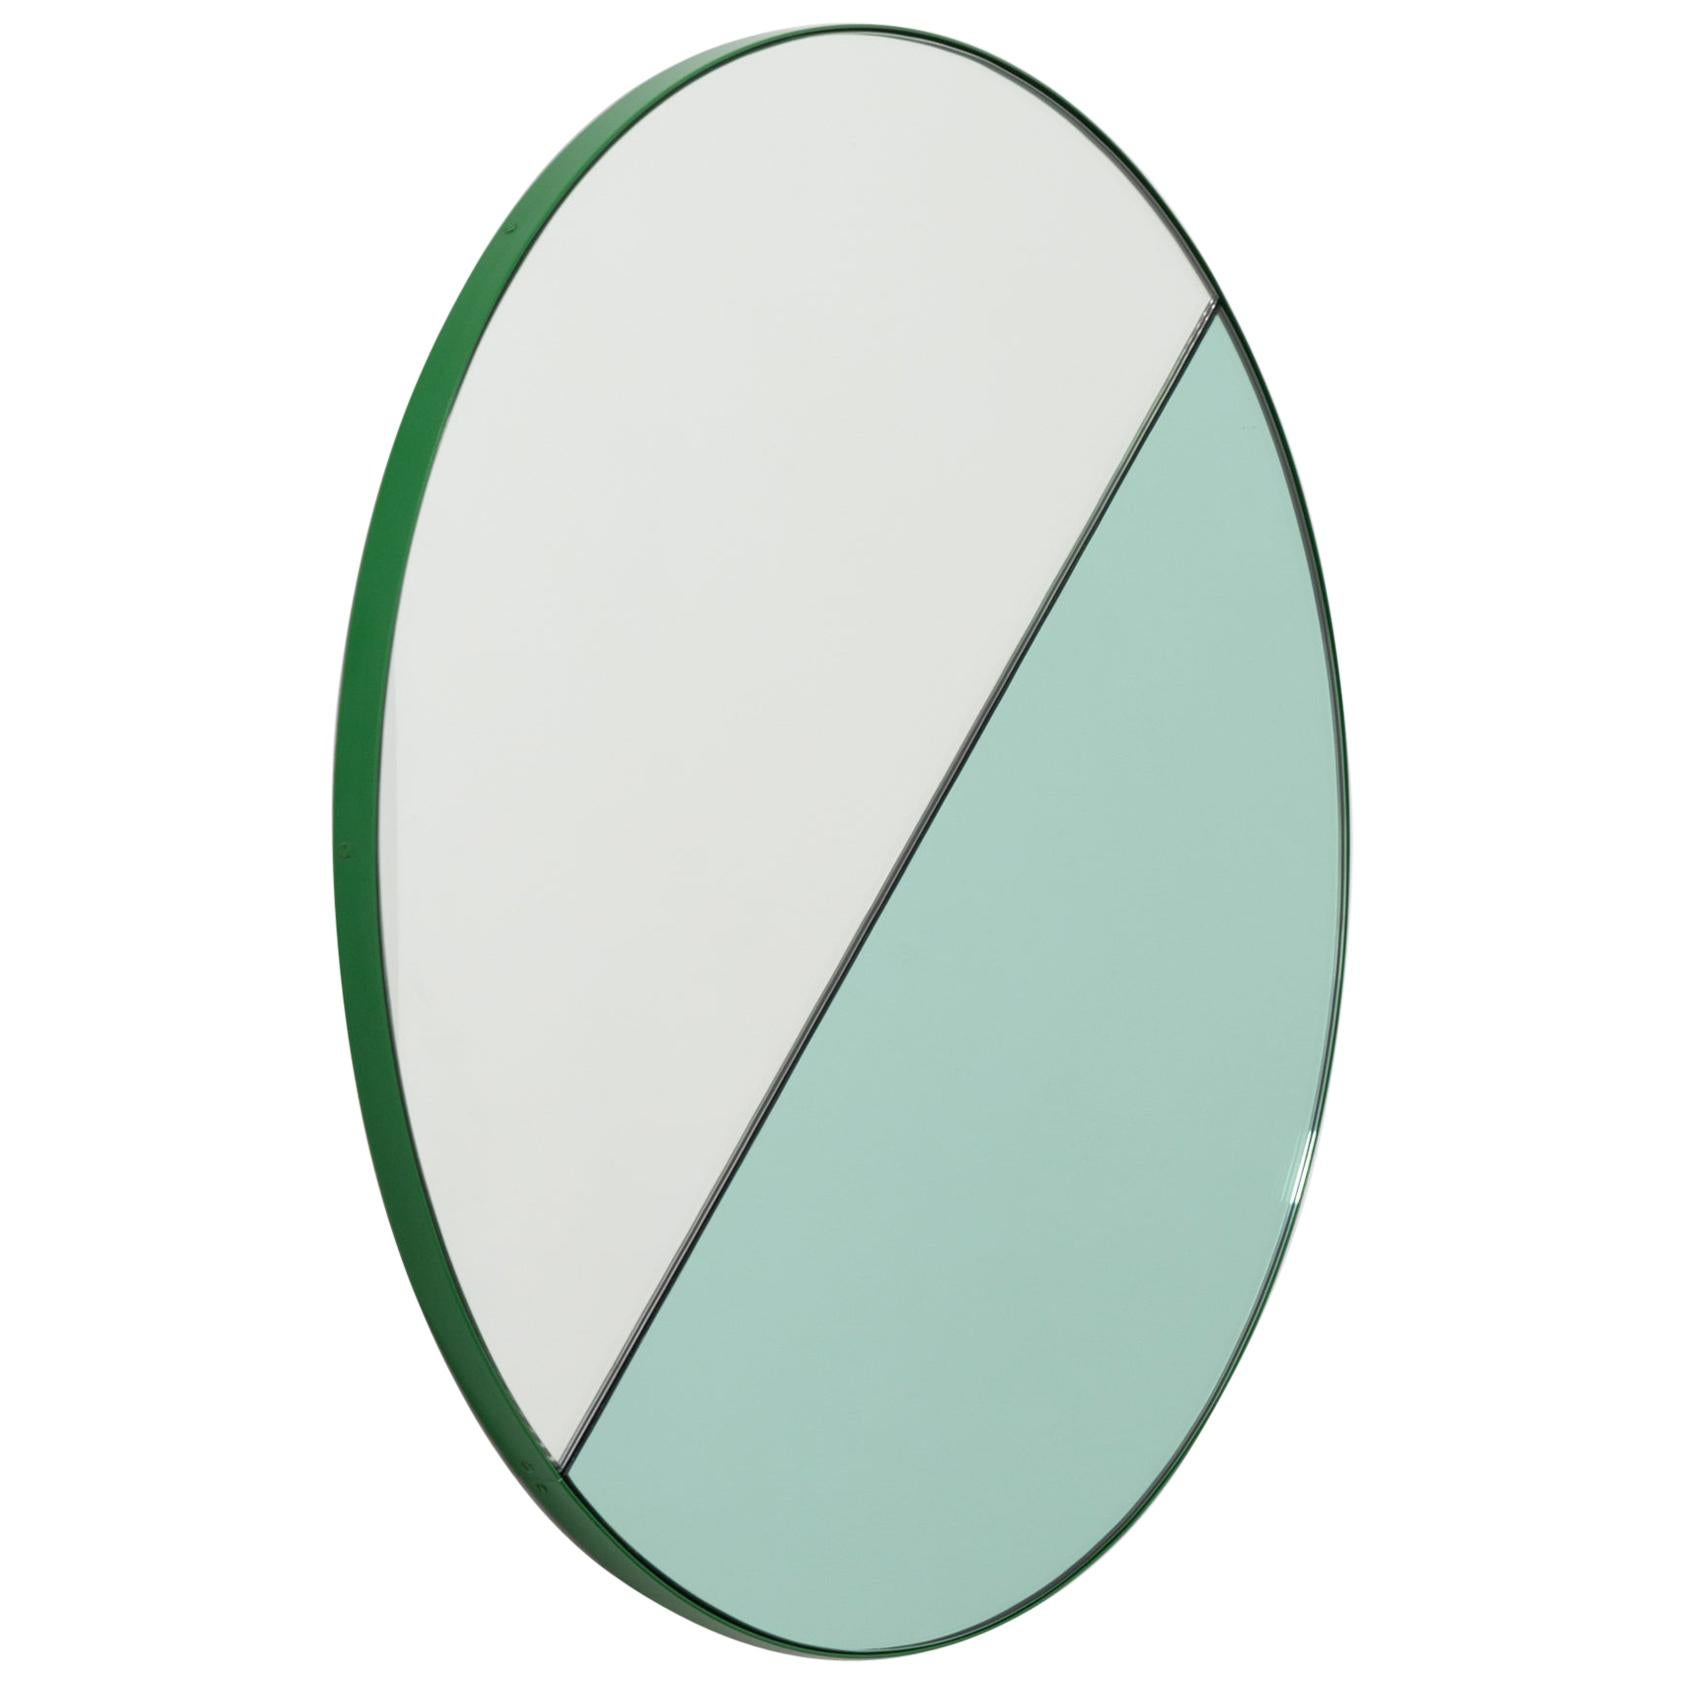 Orbis Dualis Mixed 'Green and Silver' Round Mirror with Green Frame, Regular